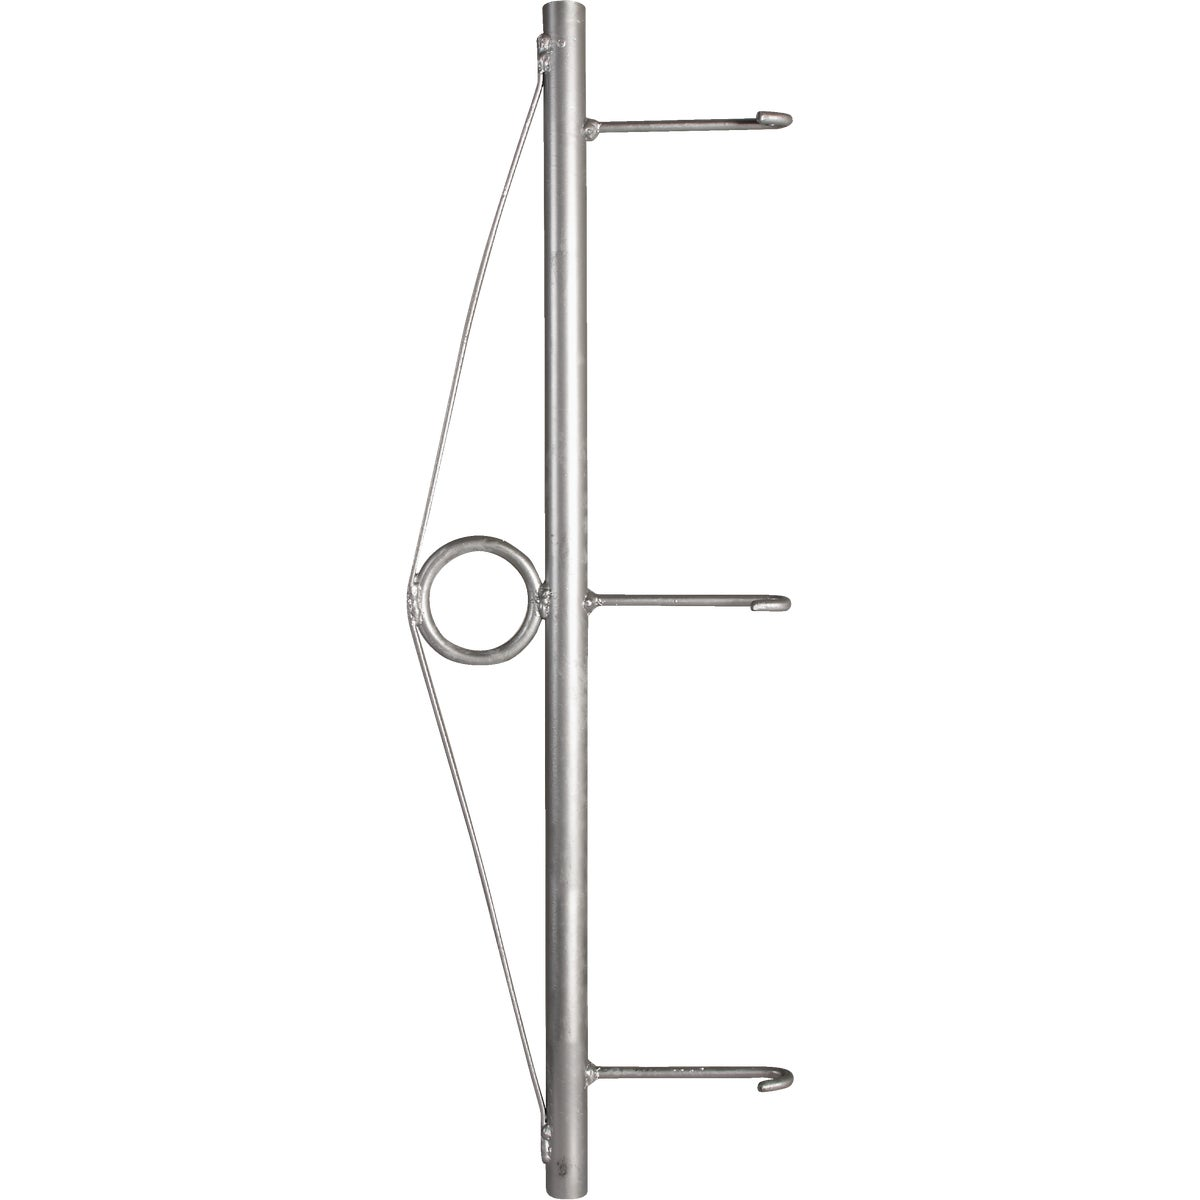 3 HOOK STRETCHER BAR - 328753DPT by Midwest Air Tech